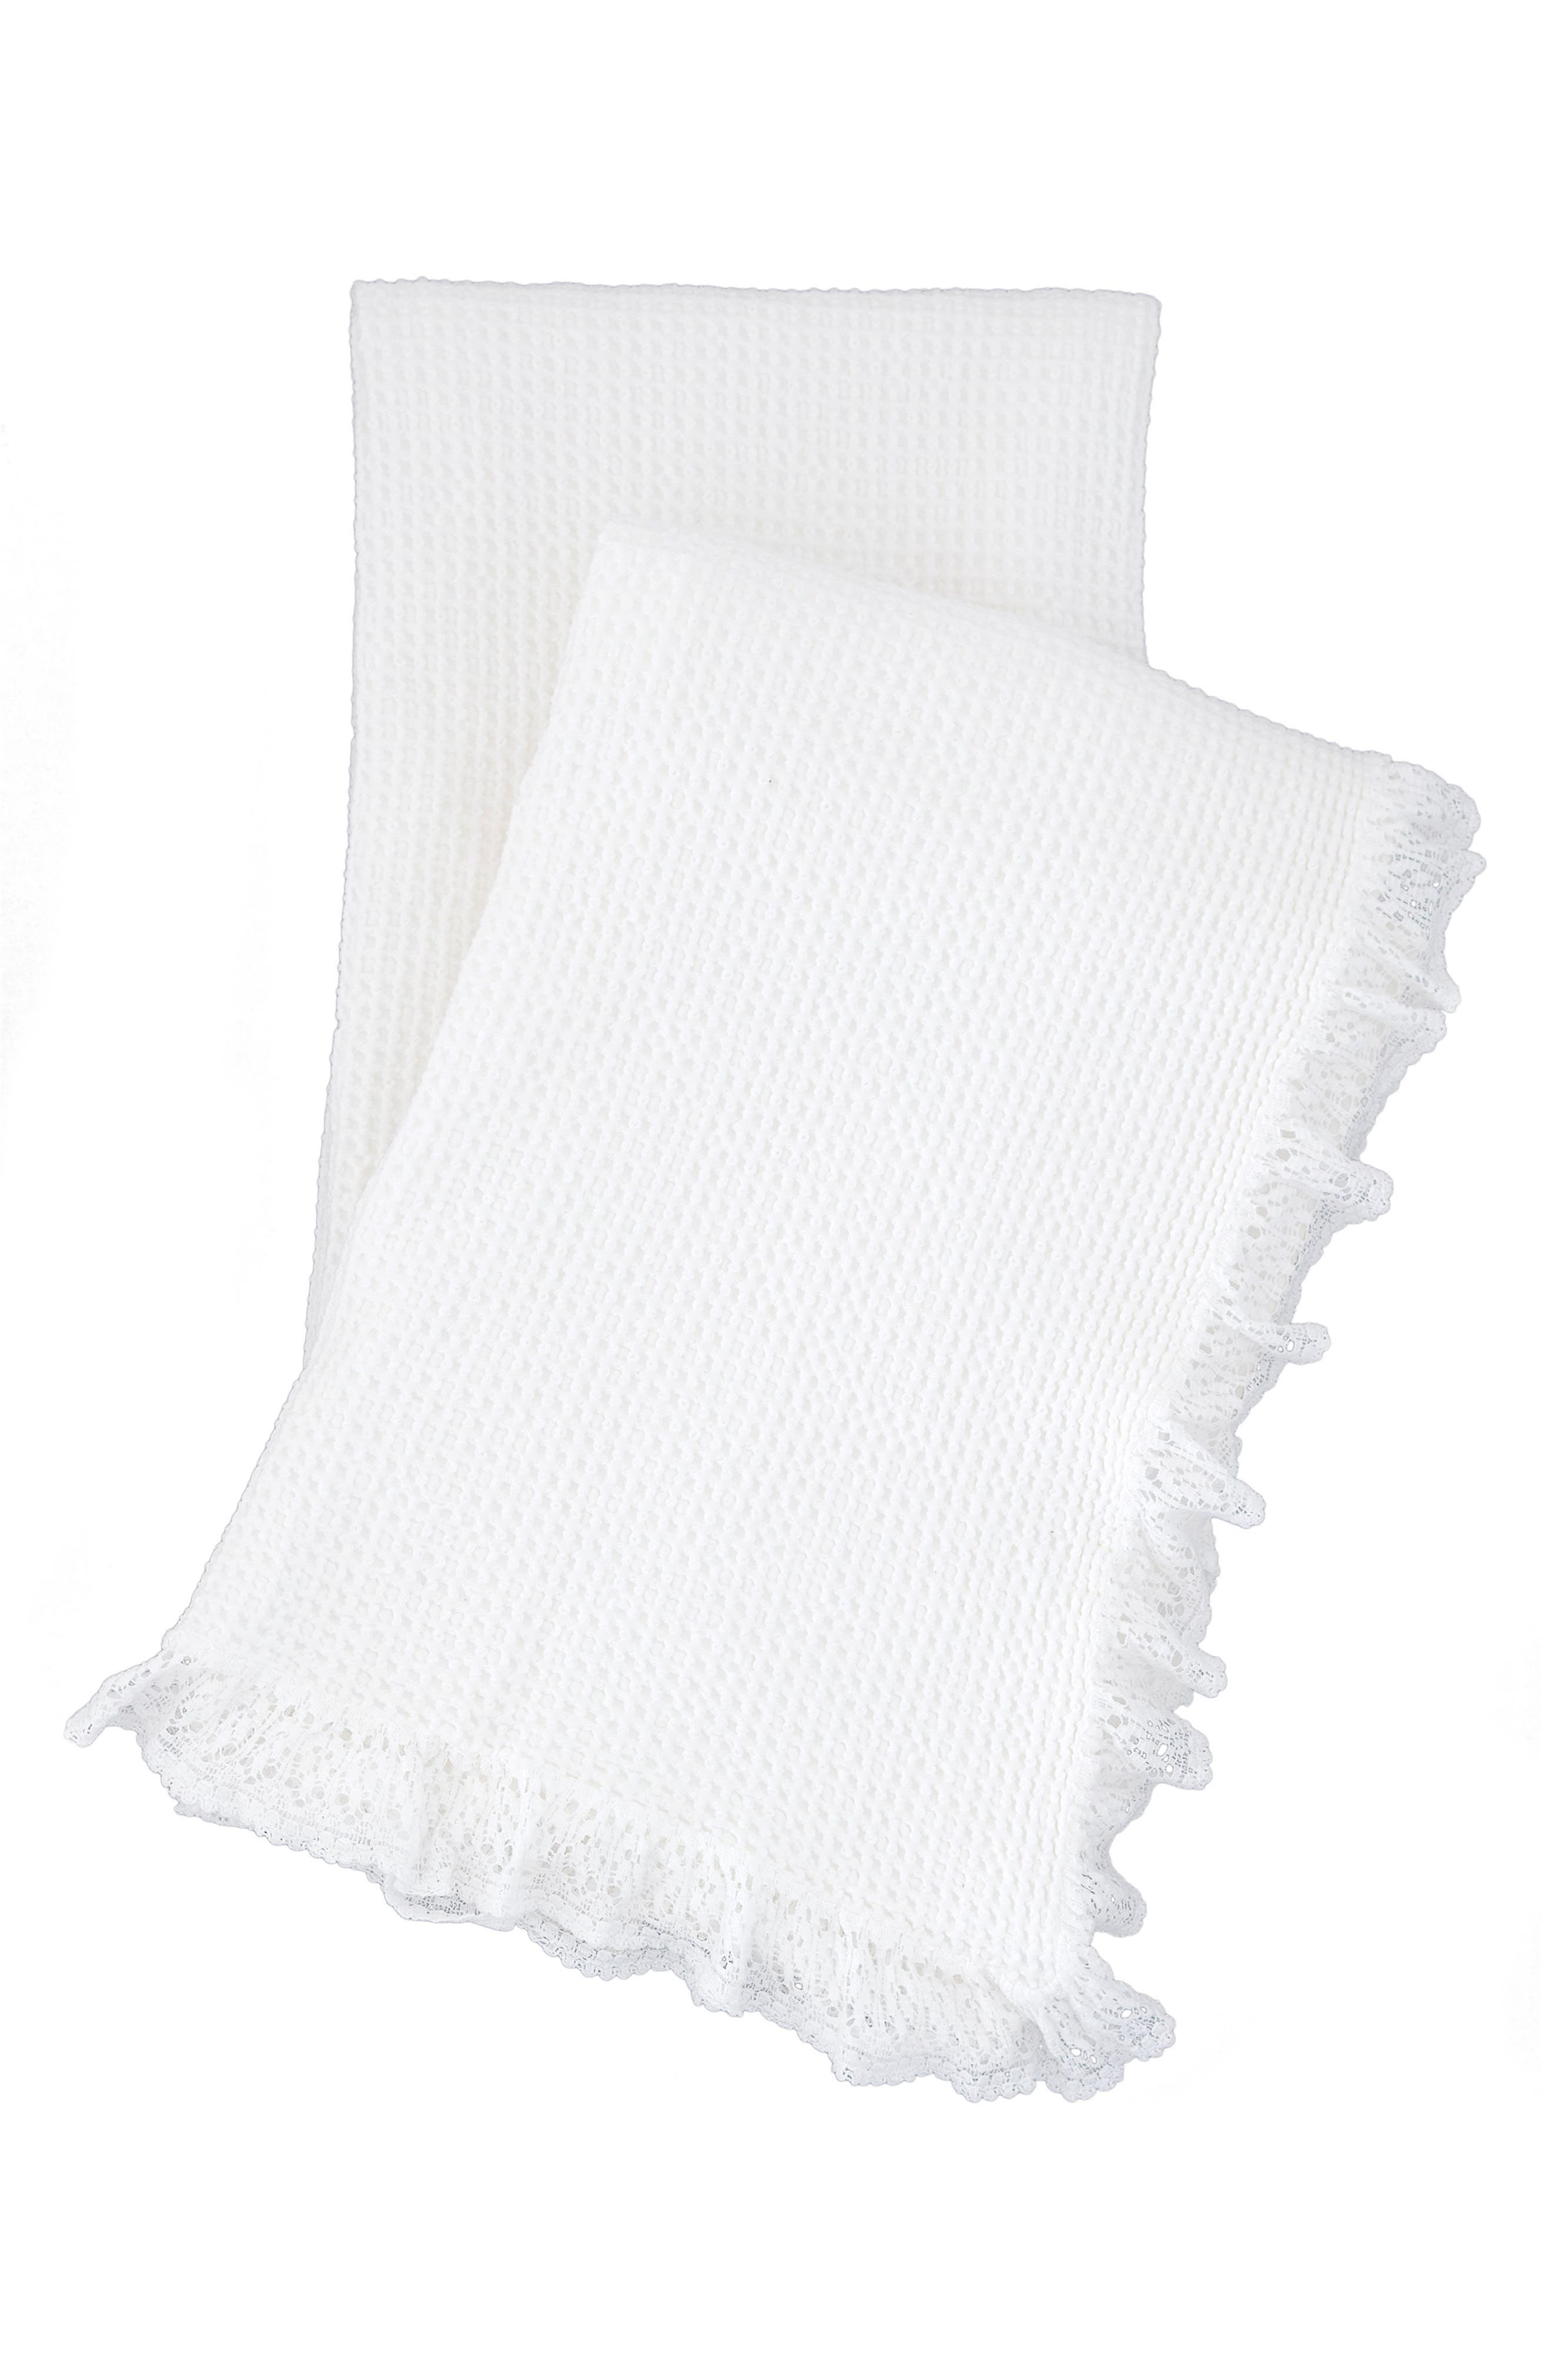 Lace Ruffle Throw,                         Main,                         color, WHITE